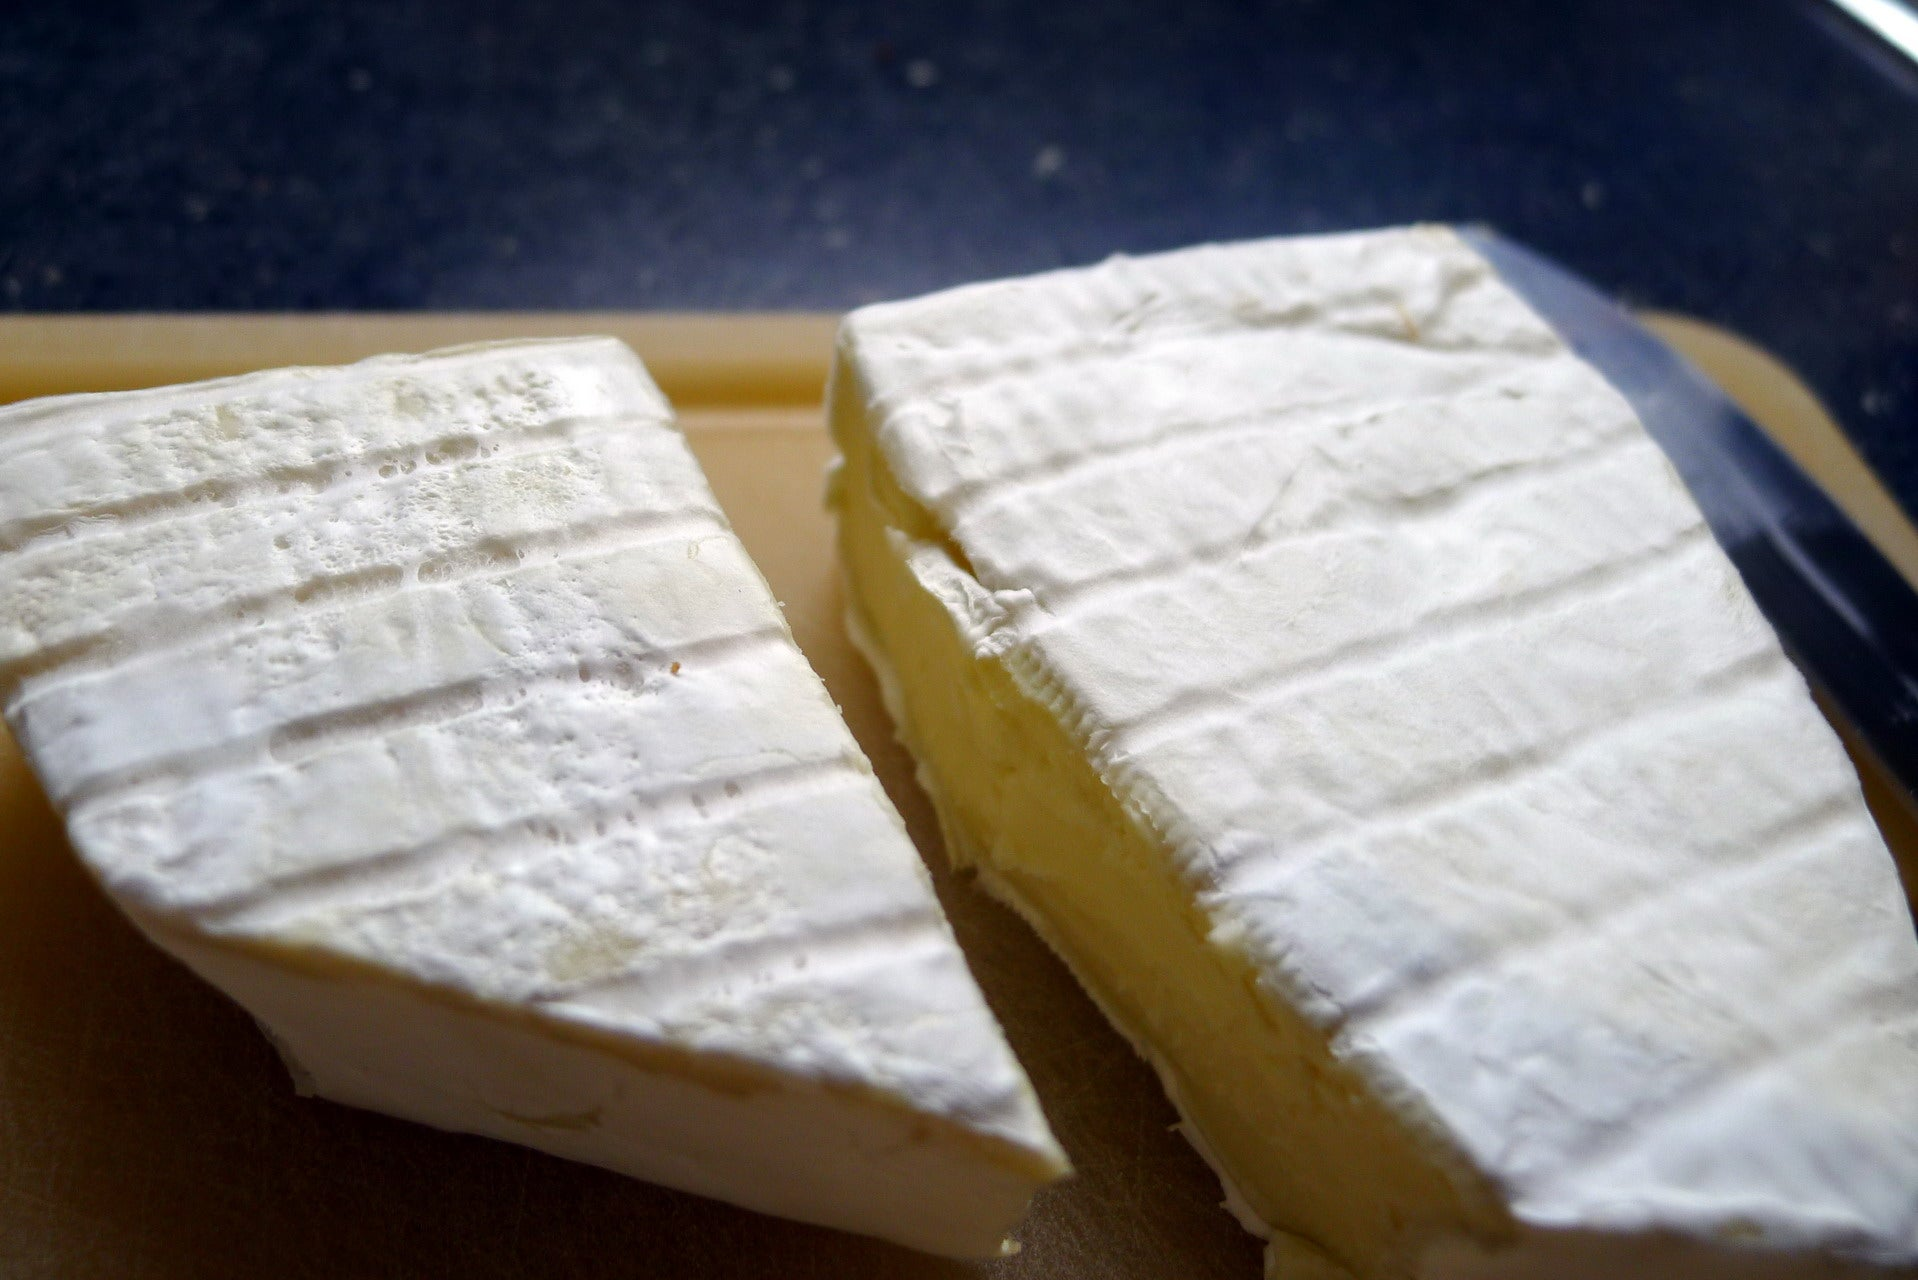 Two blocks of brie, one previously frozen, one fresh. The rind on the frozen one is darker and looks patchy.